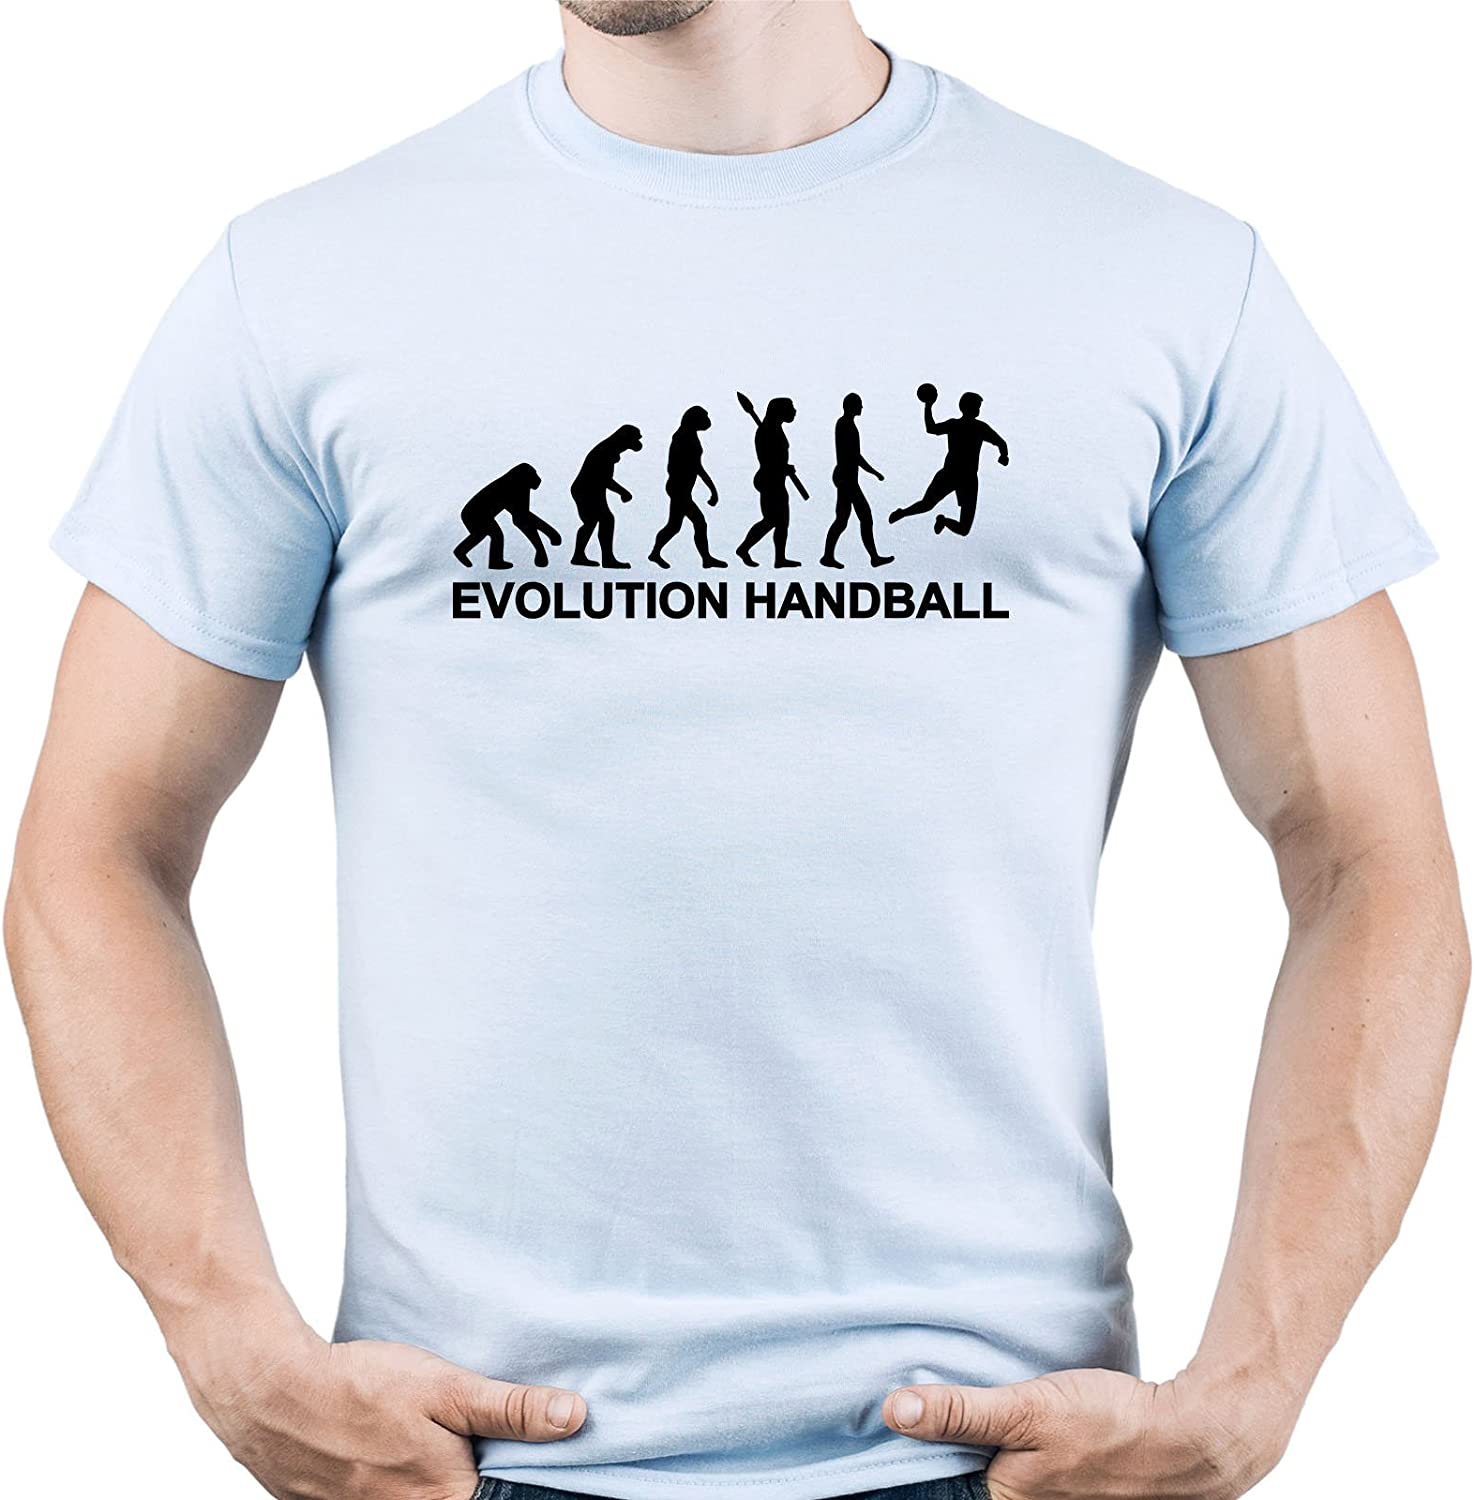 Handball Evolution Shirt Handball Tshirt Handball Player tee Handball Player Gift Camiseta para Hombre: Amazon.es: Ropa y accesorios